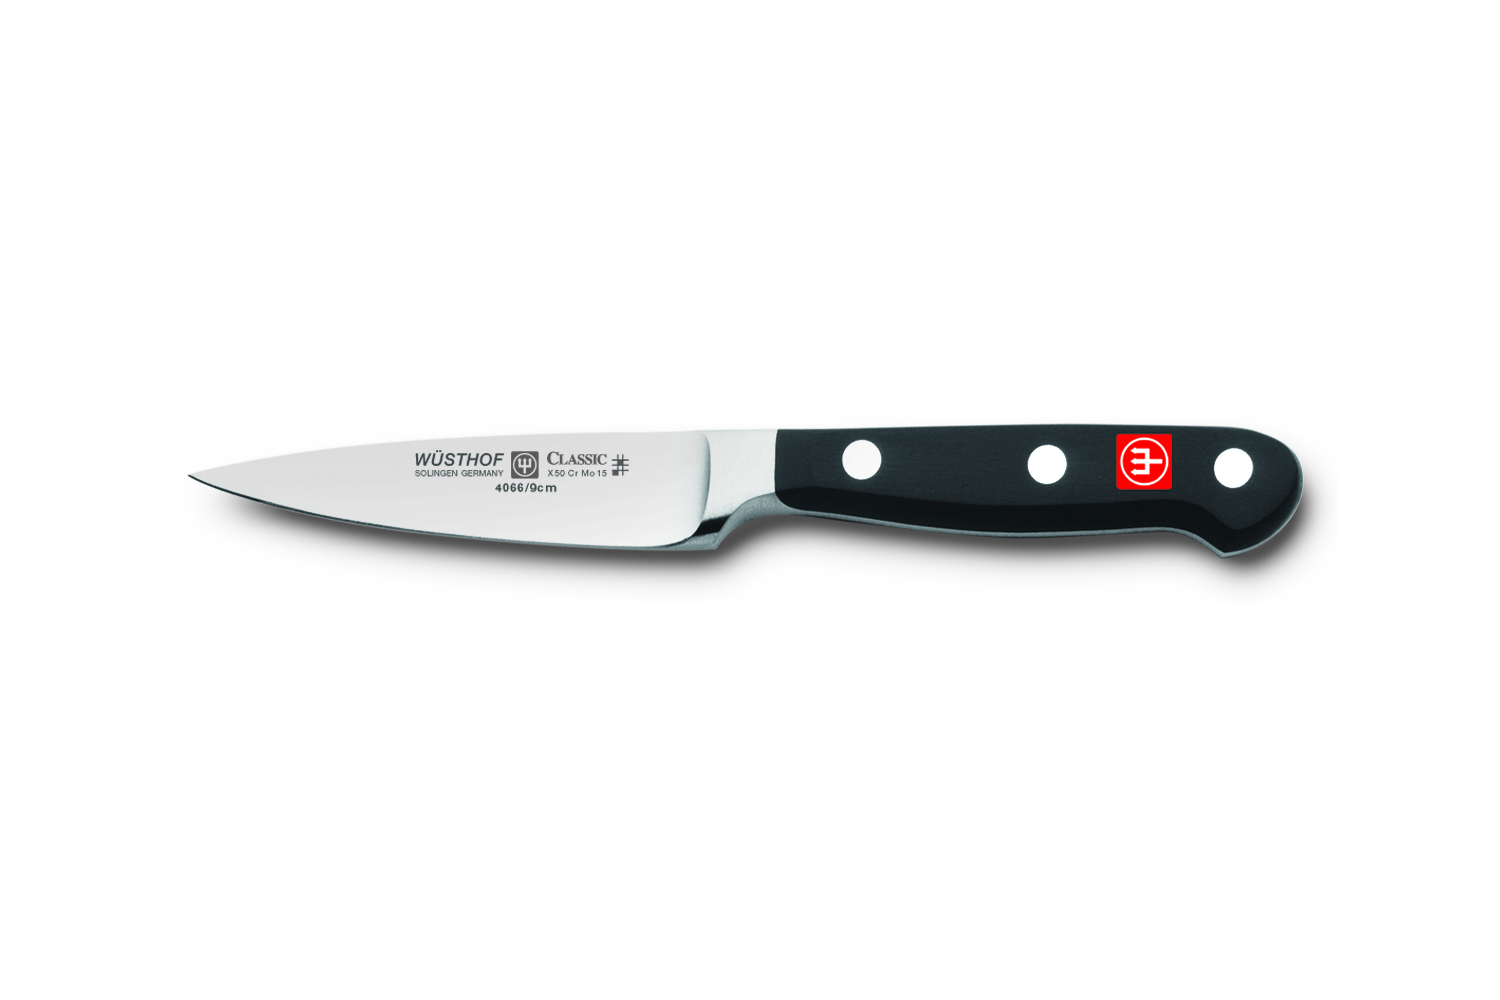 Wusthof Classic 3 1/2 inch Paring Knife